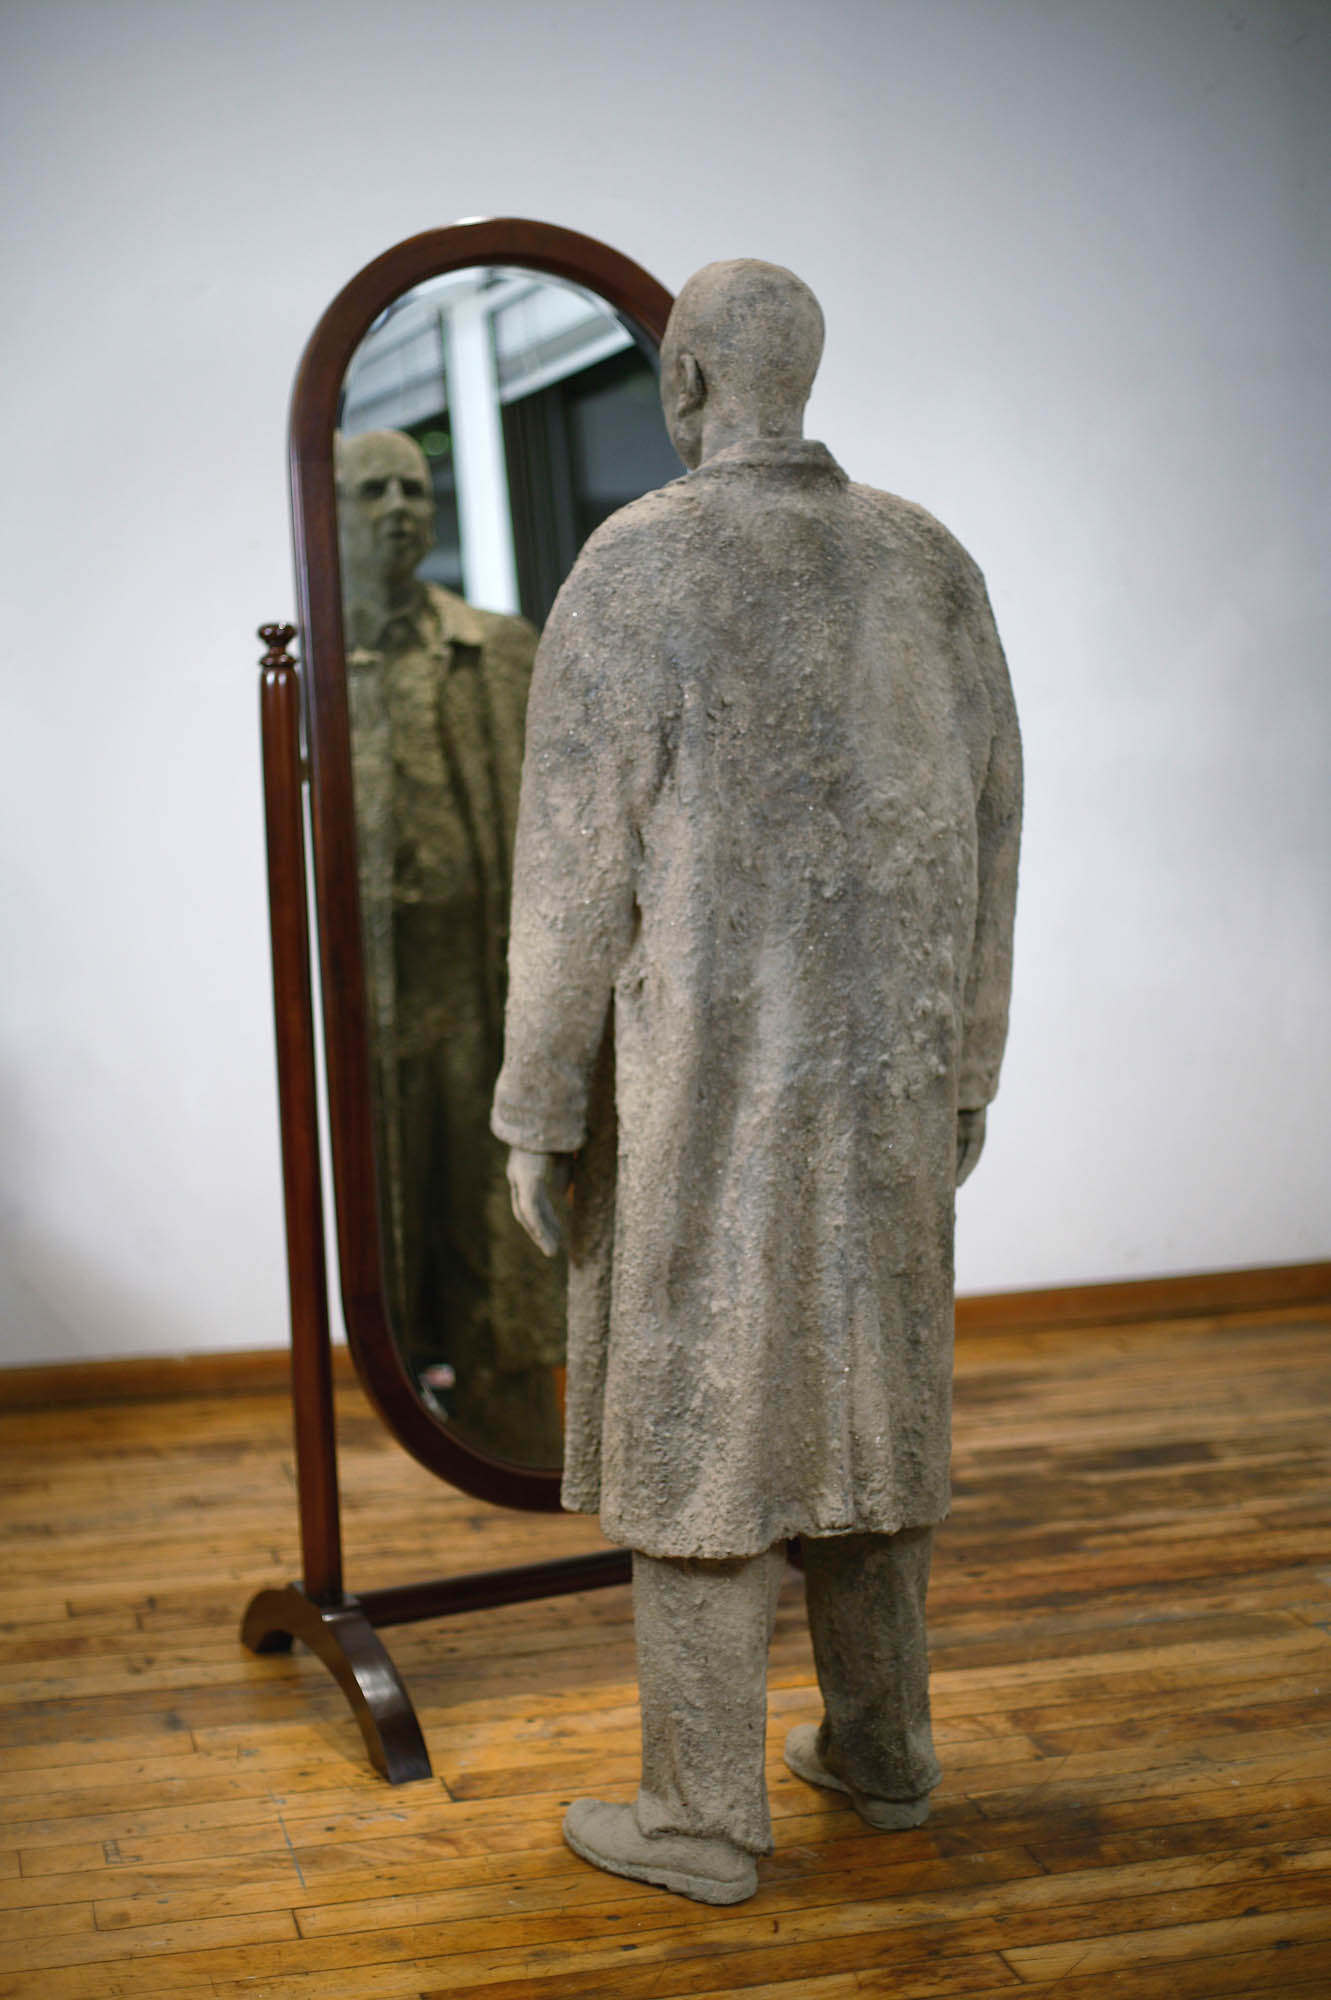 Man in the Mirror, 2008.